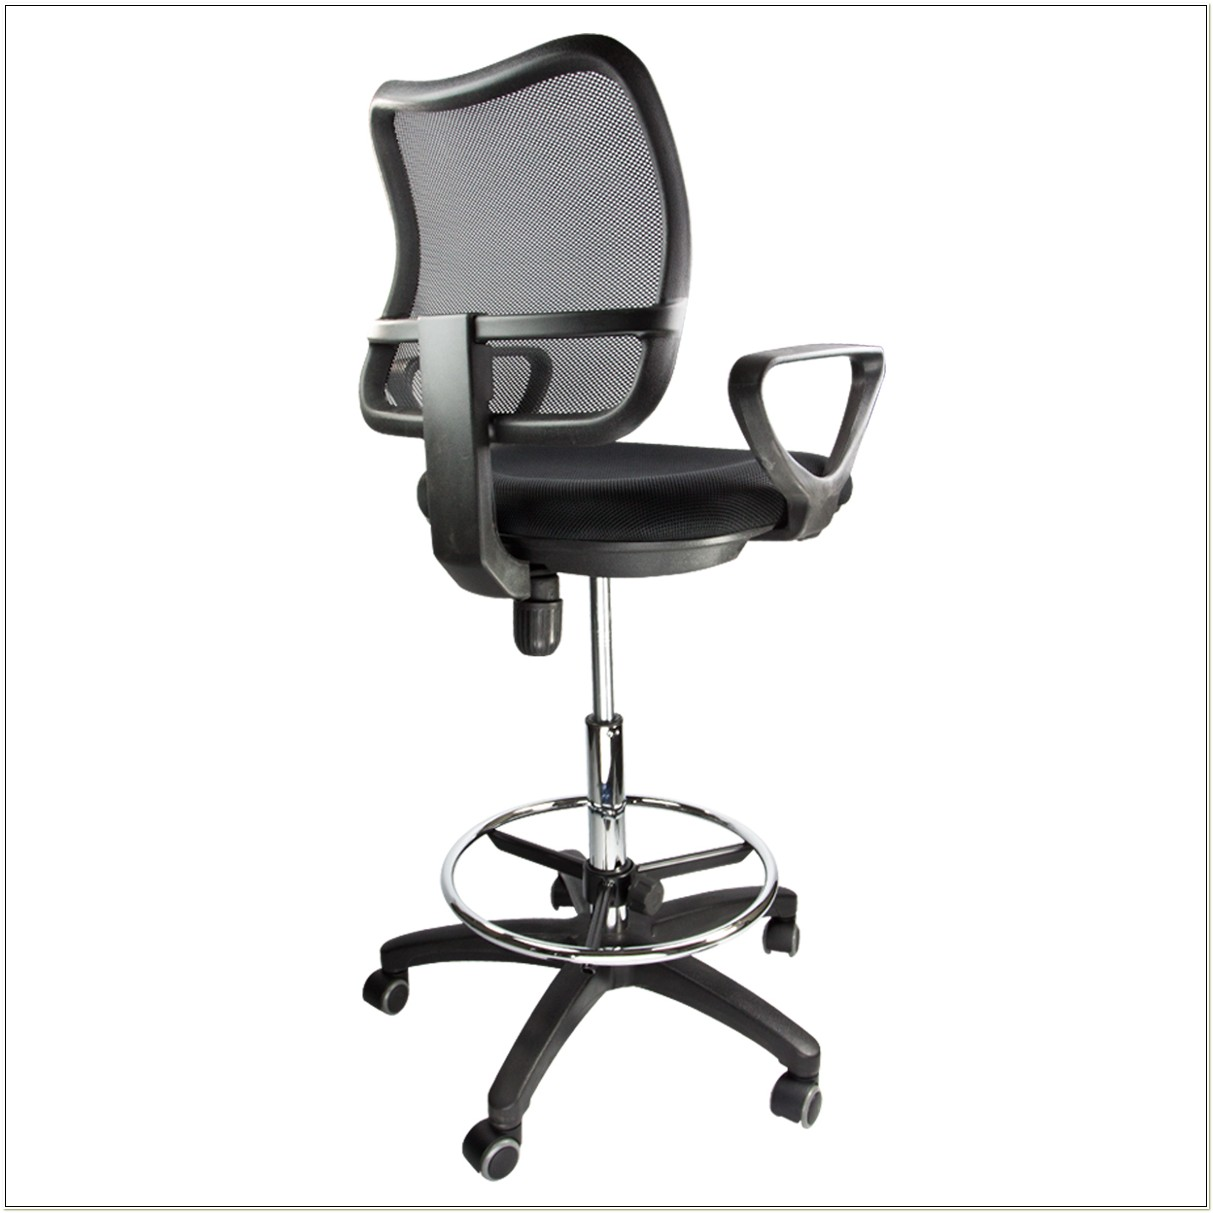 Ergonomic Drafting Chair With Arms